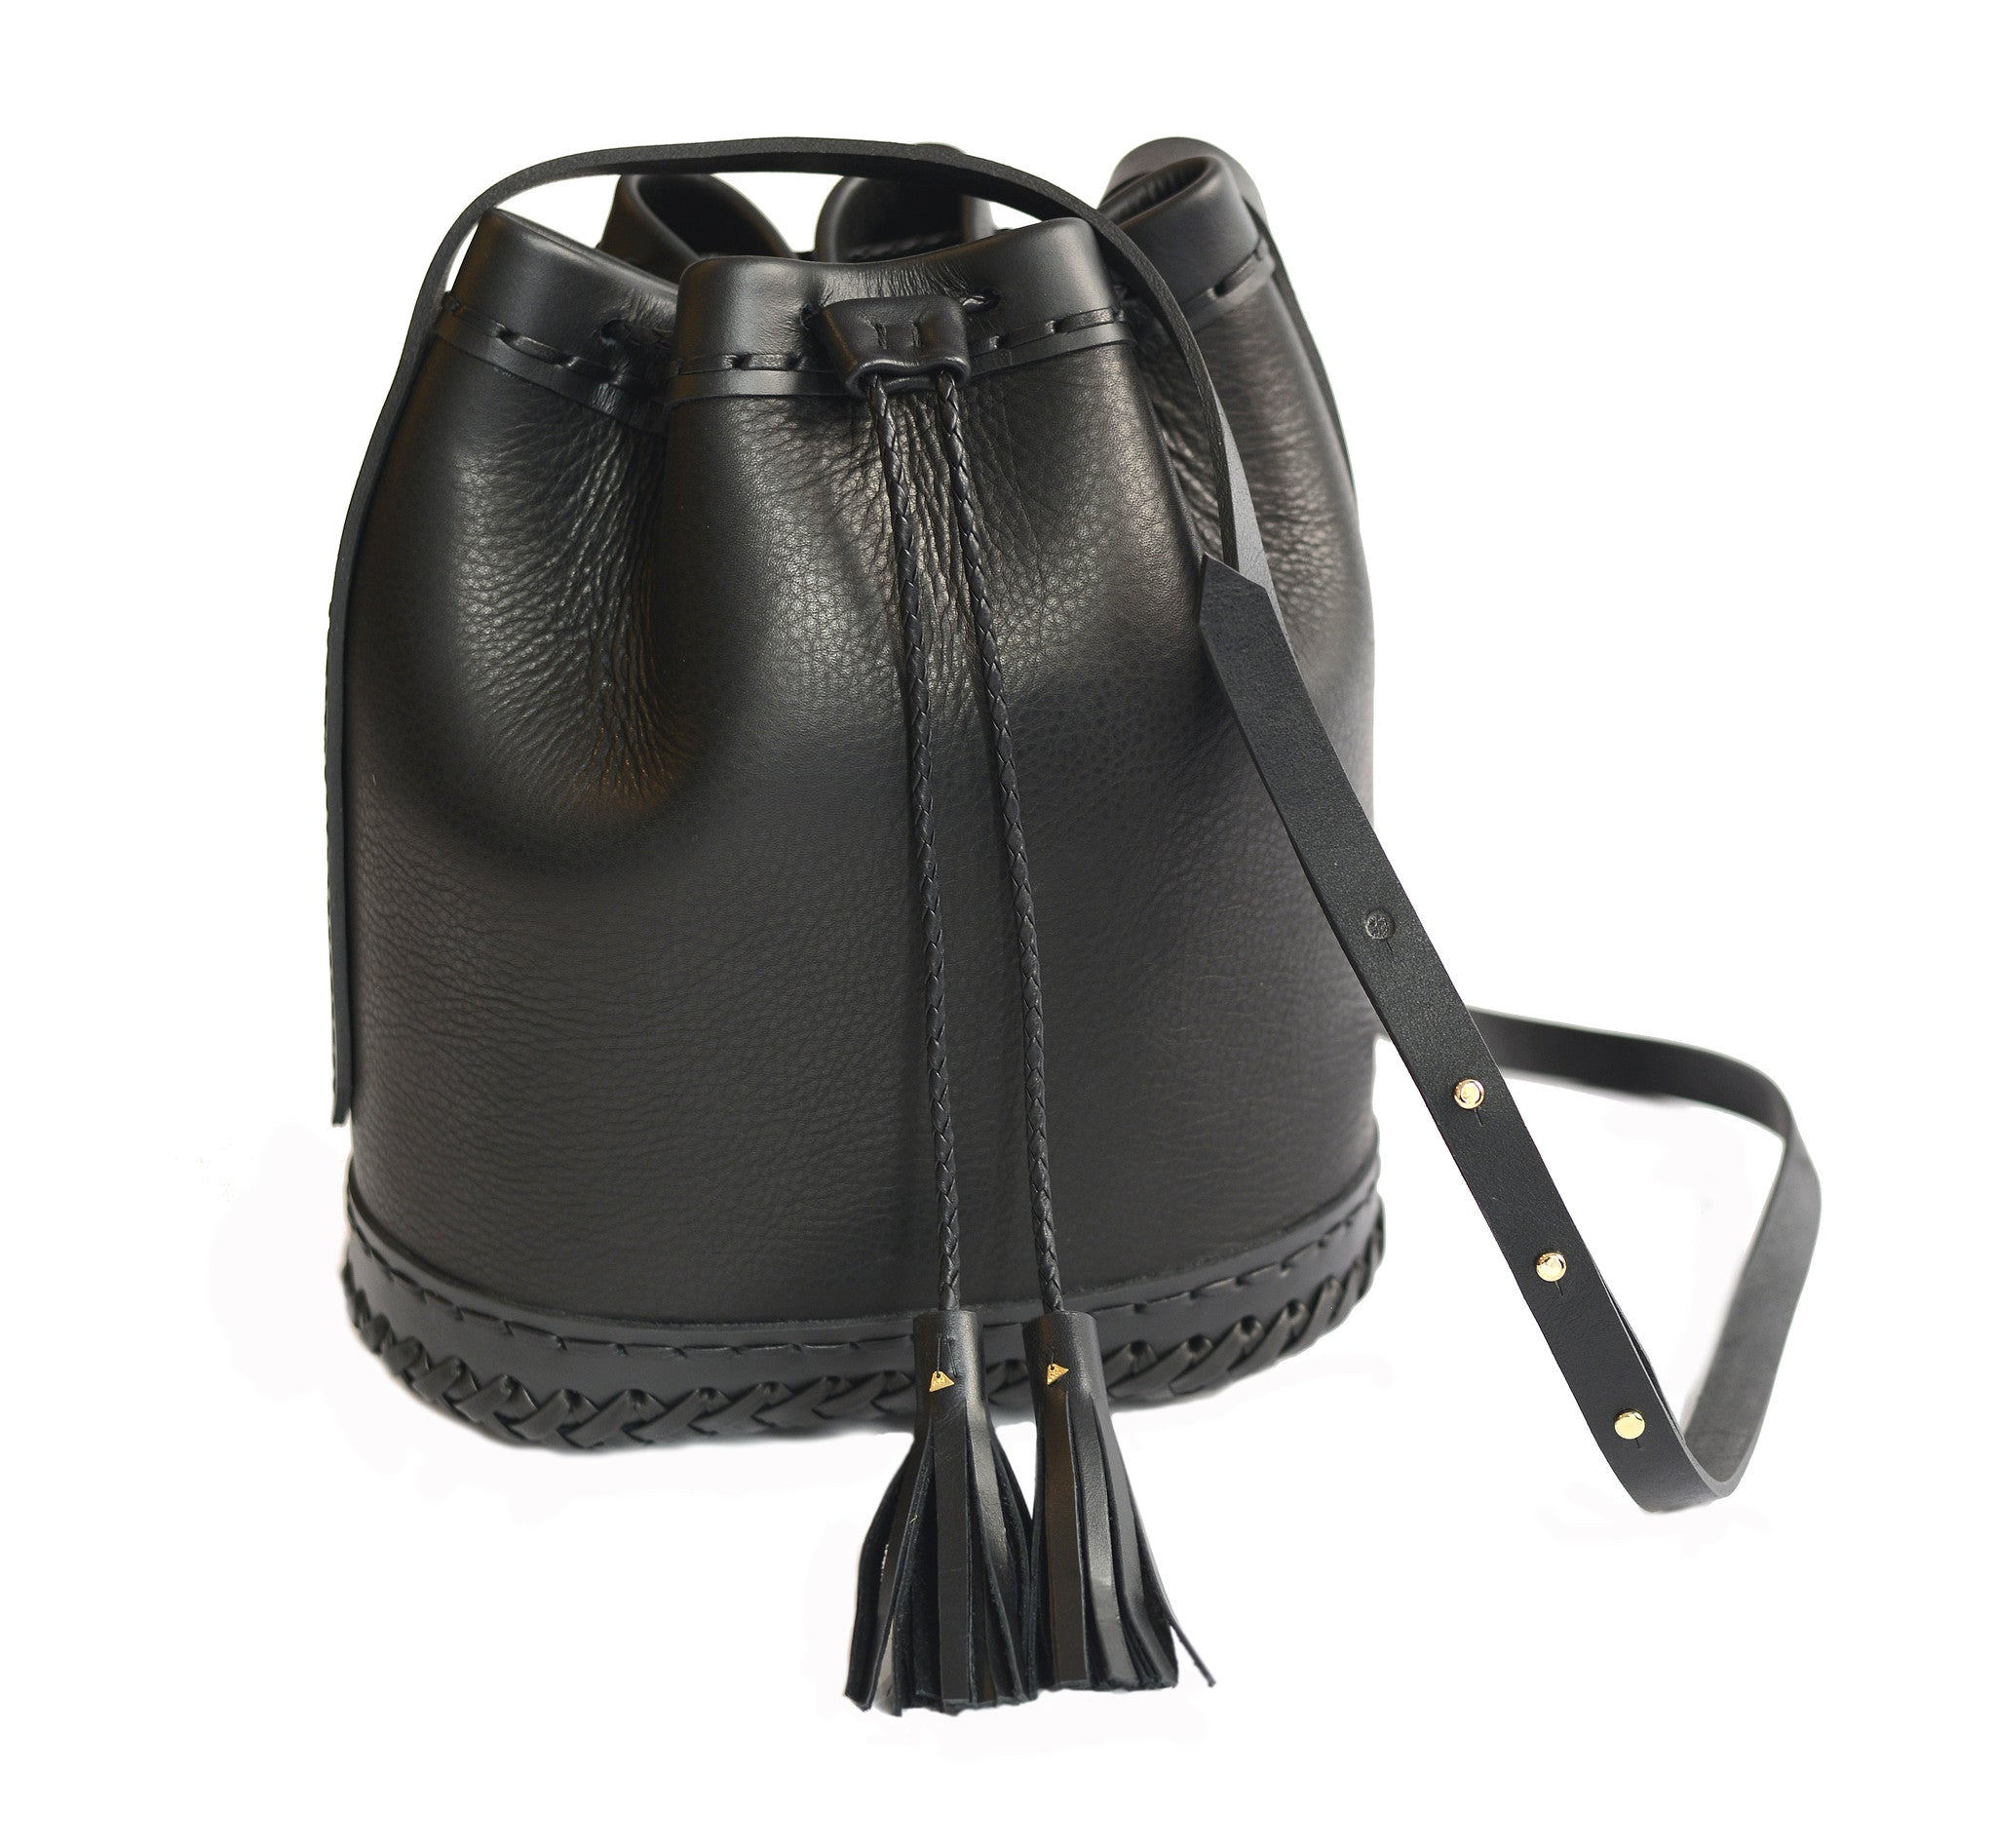 Black Large Carriage Bag Wendy Nichol Leather Handbag Purse Designer Handmade in NYC New York City Large Bucket Bag Cross body Adjustable Durable Strap fringe tassel draw string Drawstring Pouch High Quality Black Leather